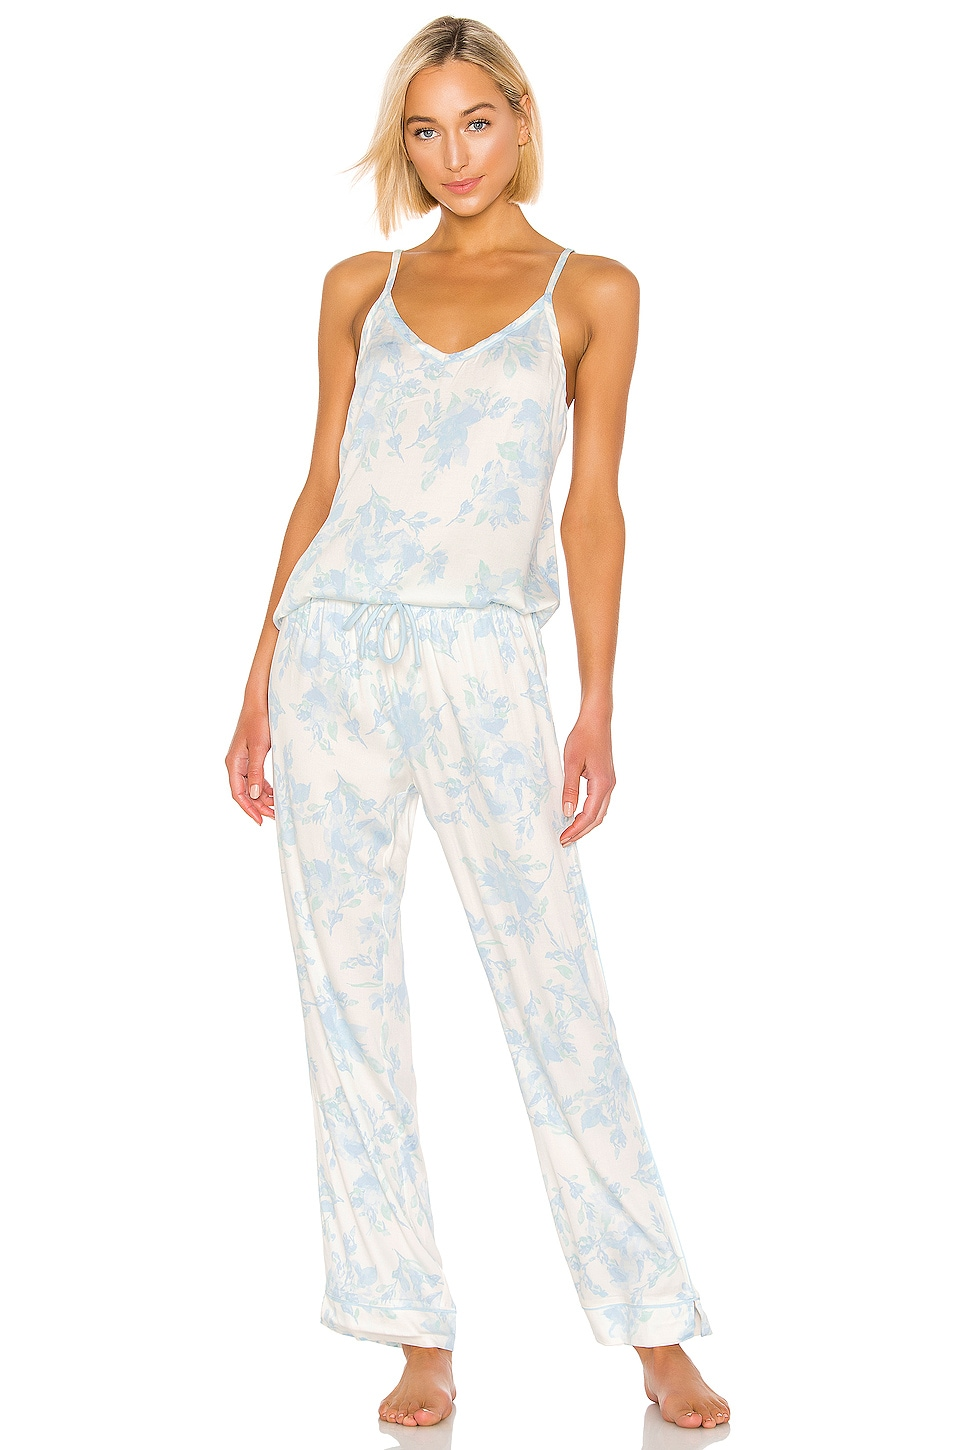 Splendid Sleep PJ Set in Floral Shades